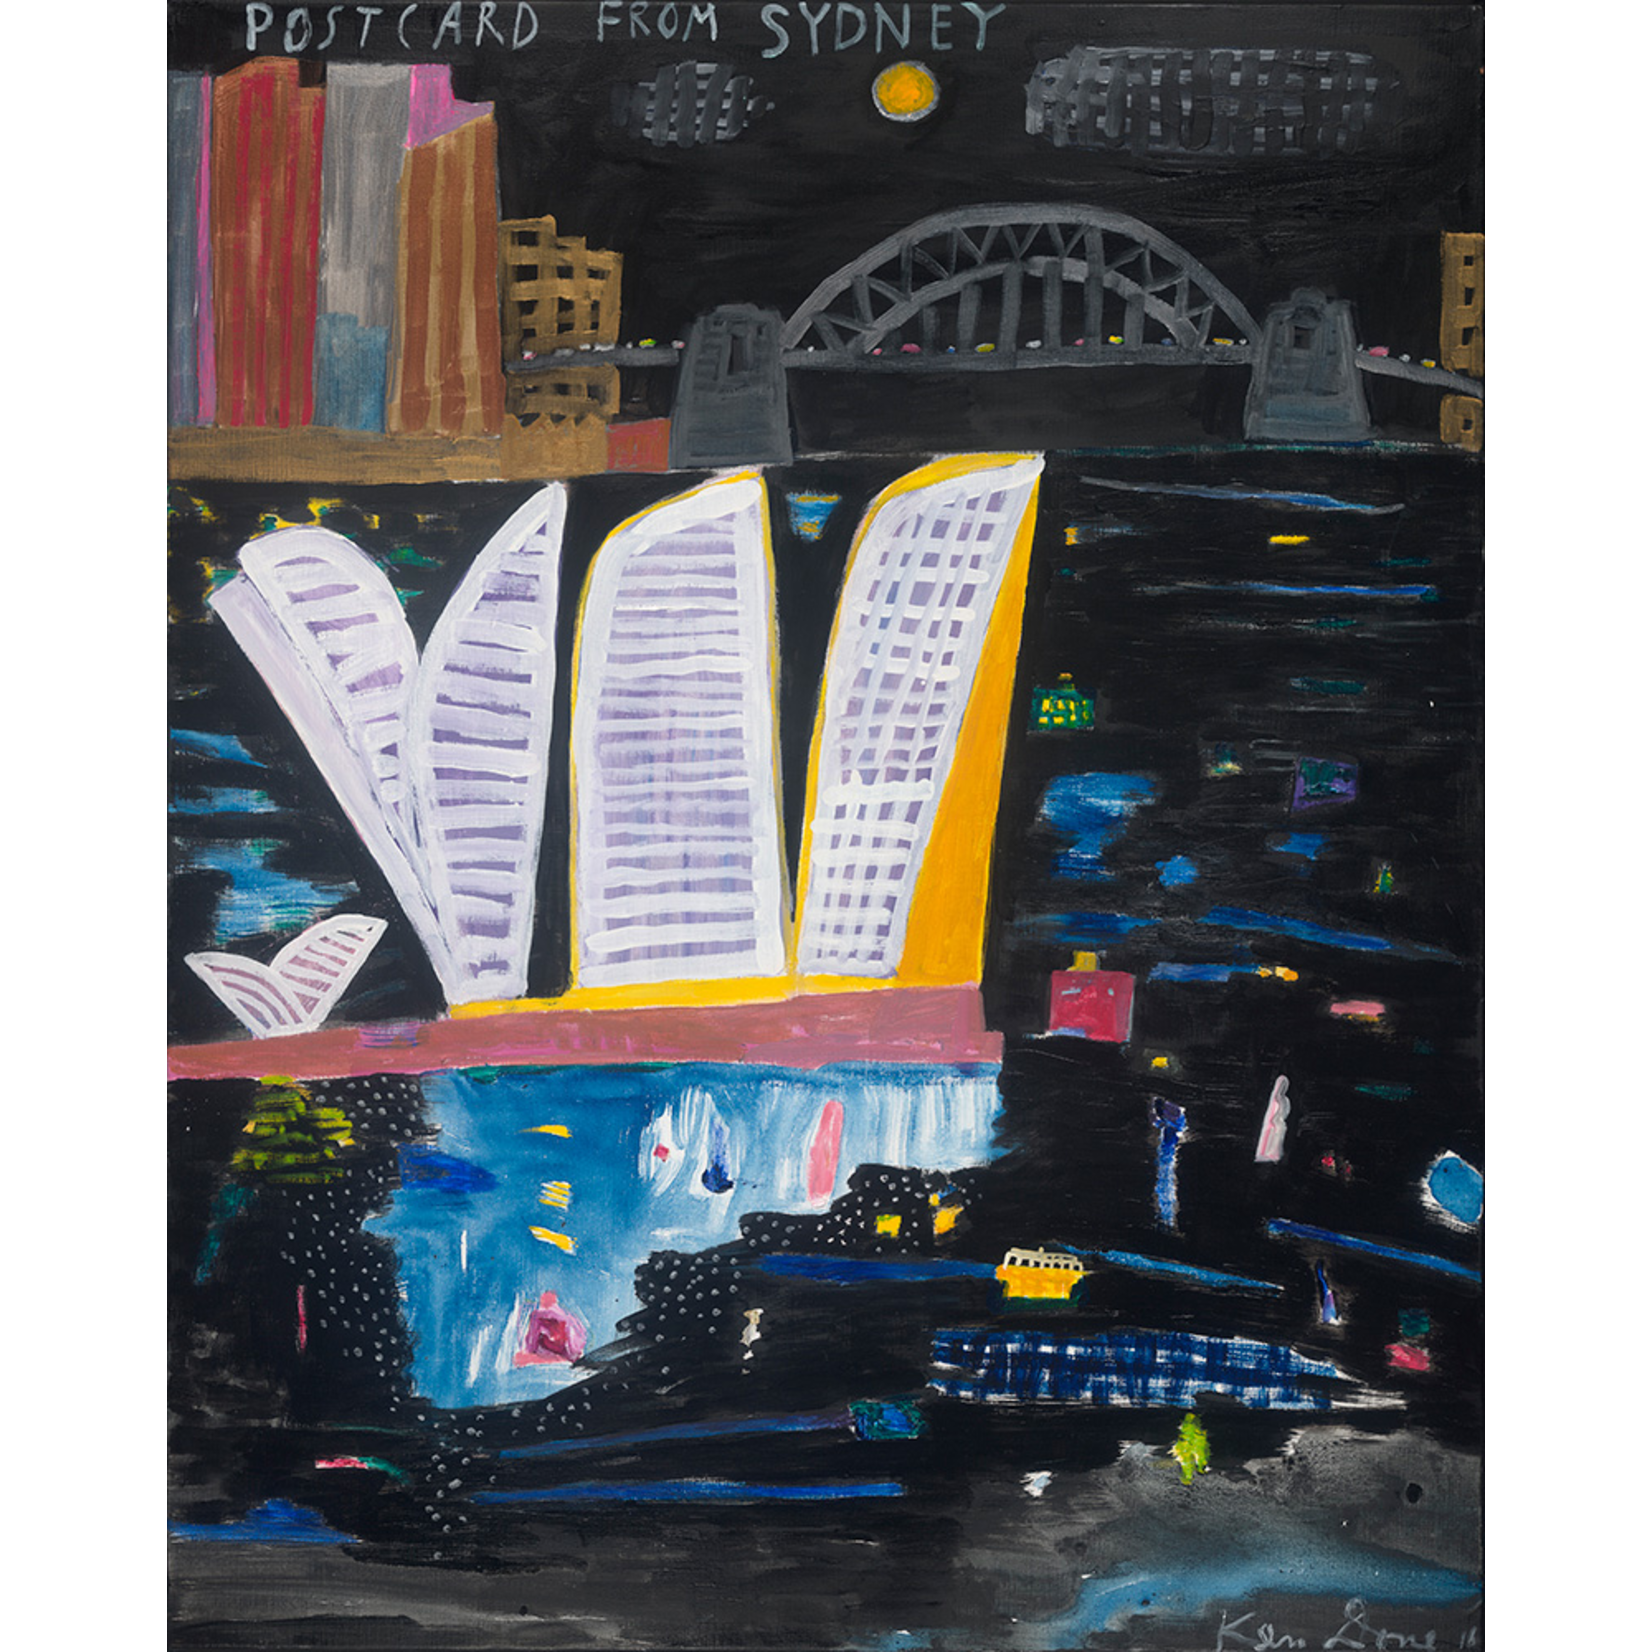 Limited Edition Prints Postcard from Sydney, full moon, 2016